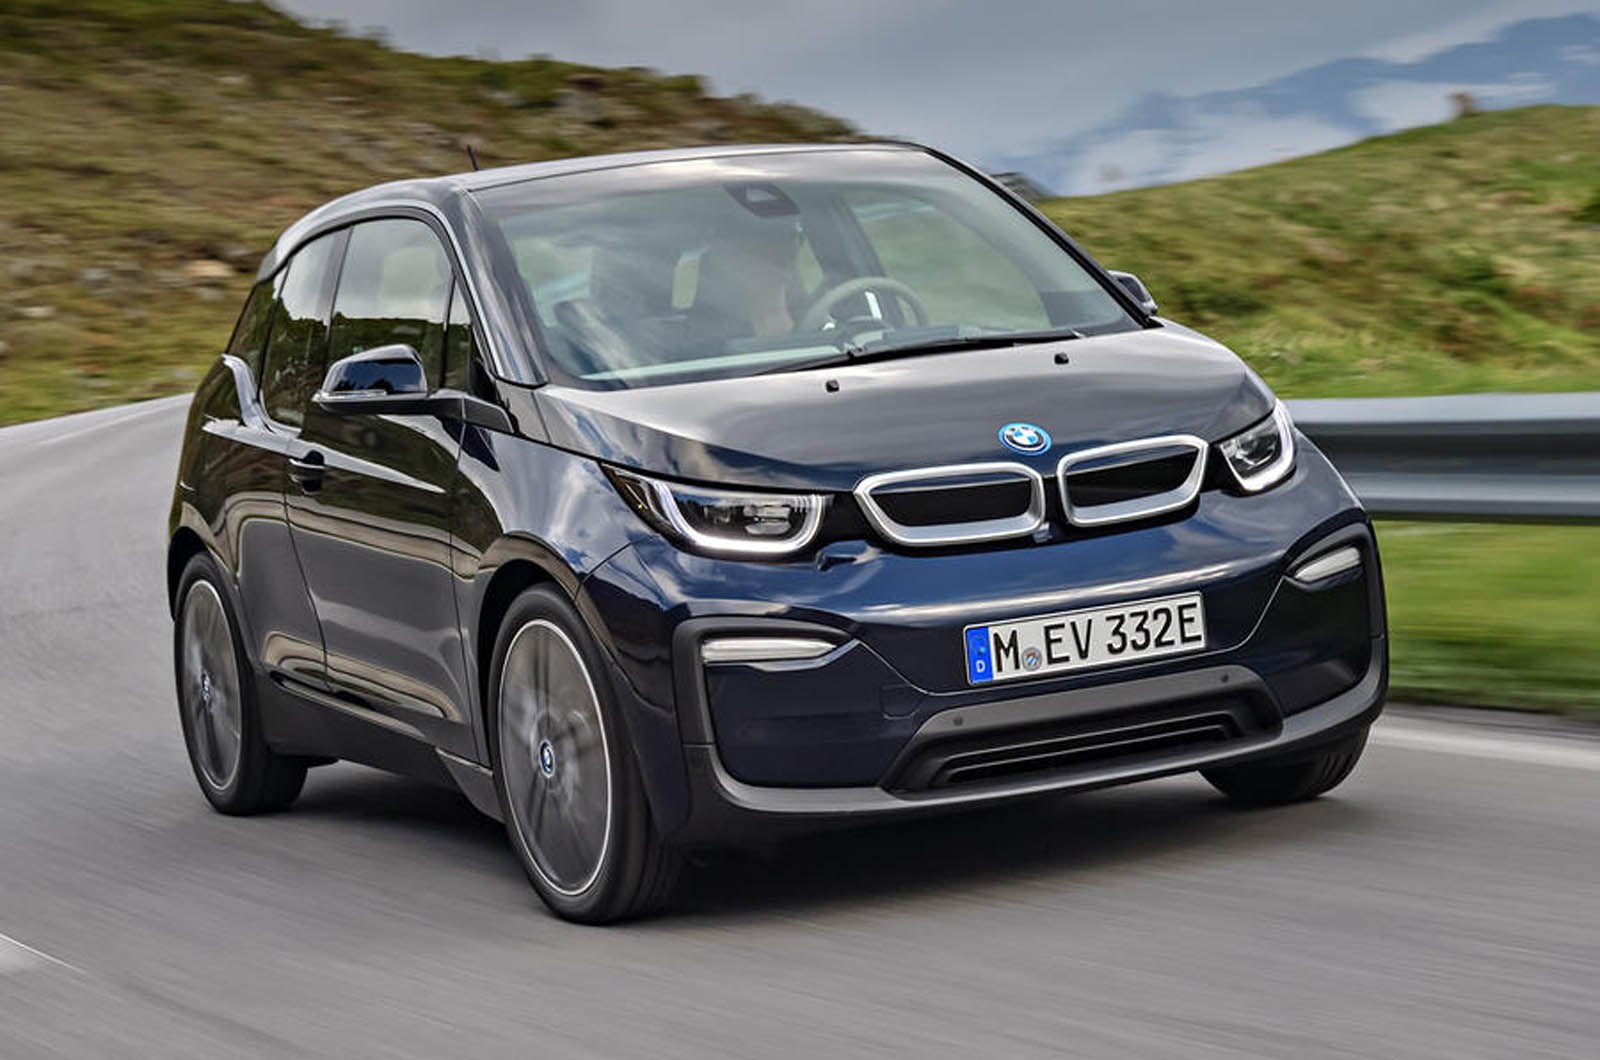 Bmw I3 And I8 Might Not Be Replaced Autocar